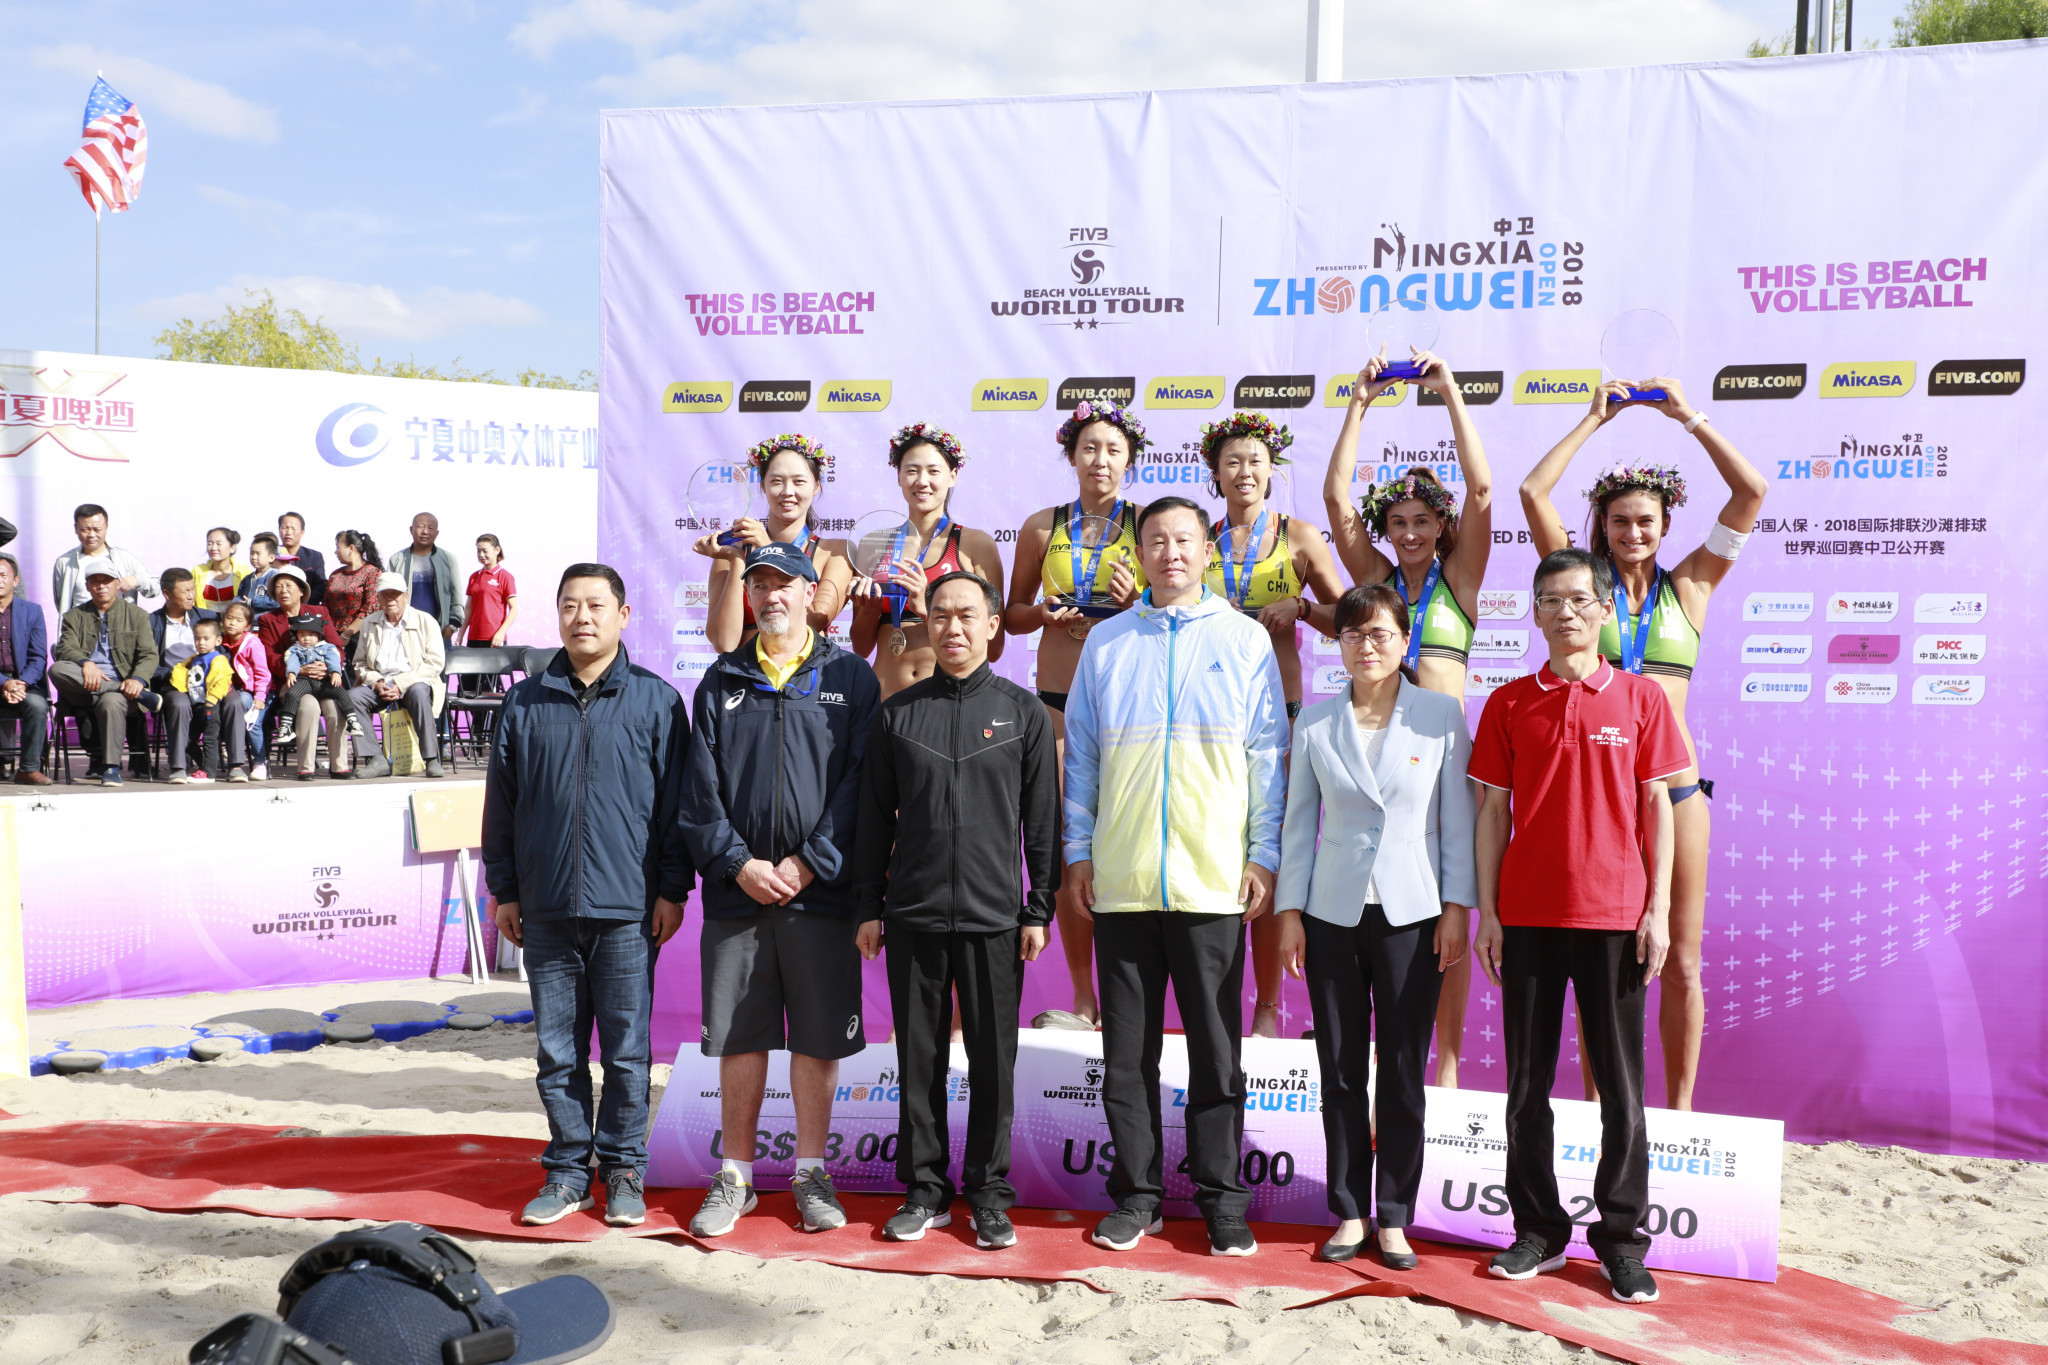 Medallists at the Zhongwei Open earlier this month - China will also host the next FIVB Beach Volleyball World Tour event in Qinzhou starting from tomorrow ©FIVB